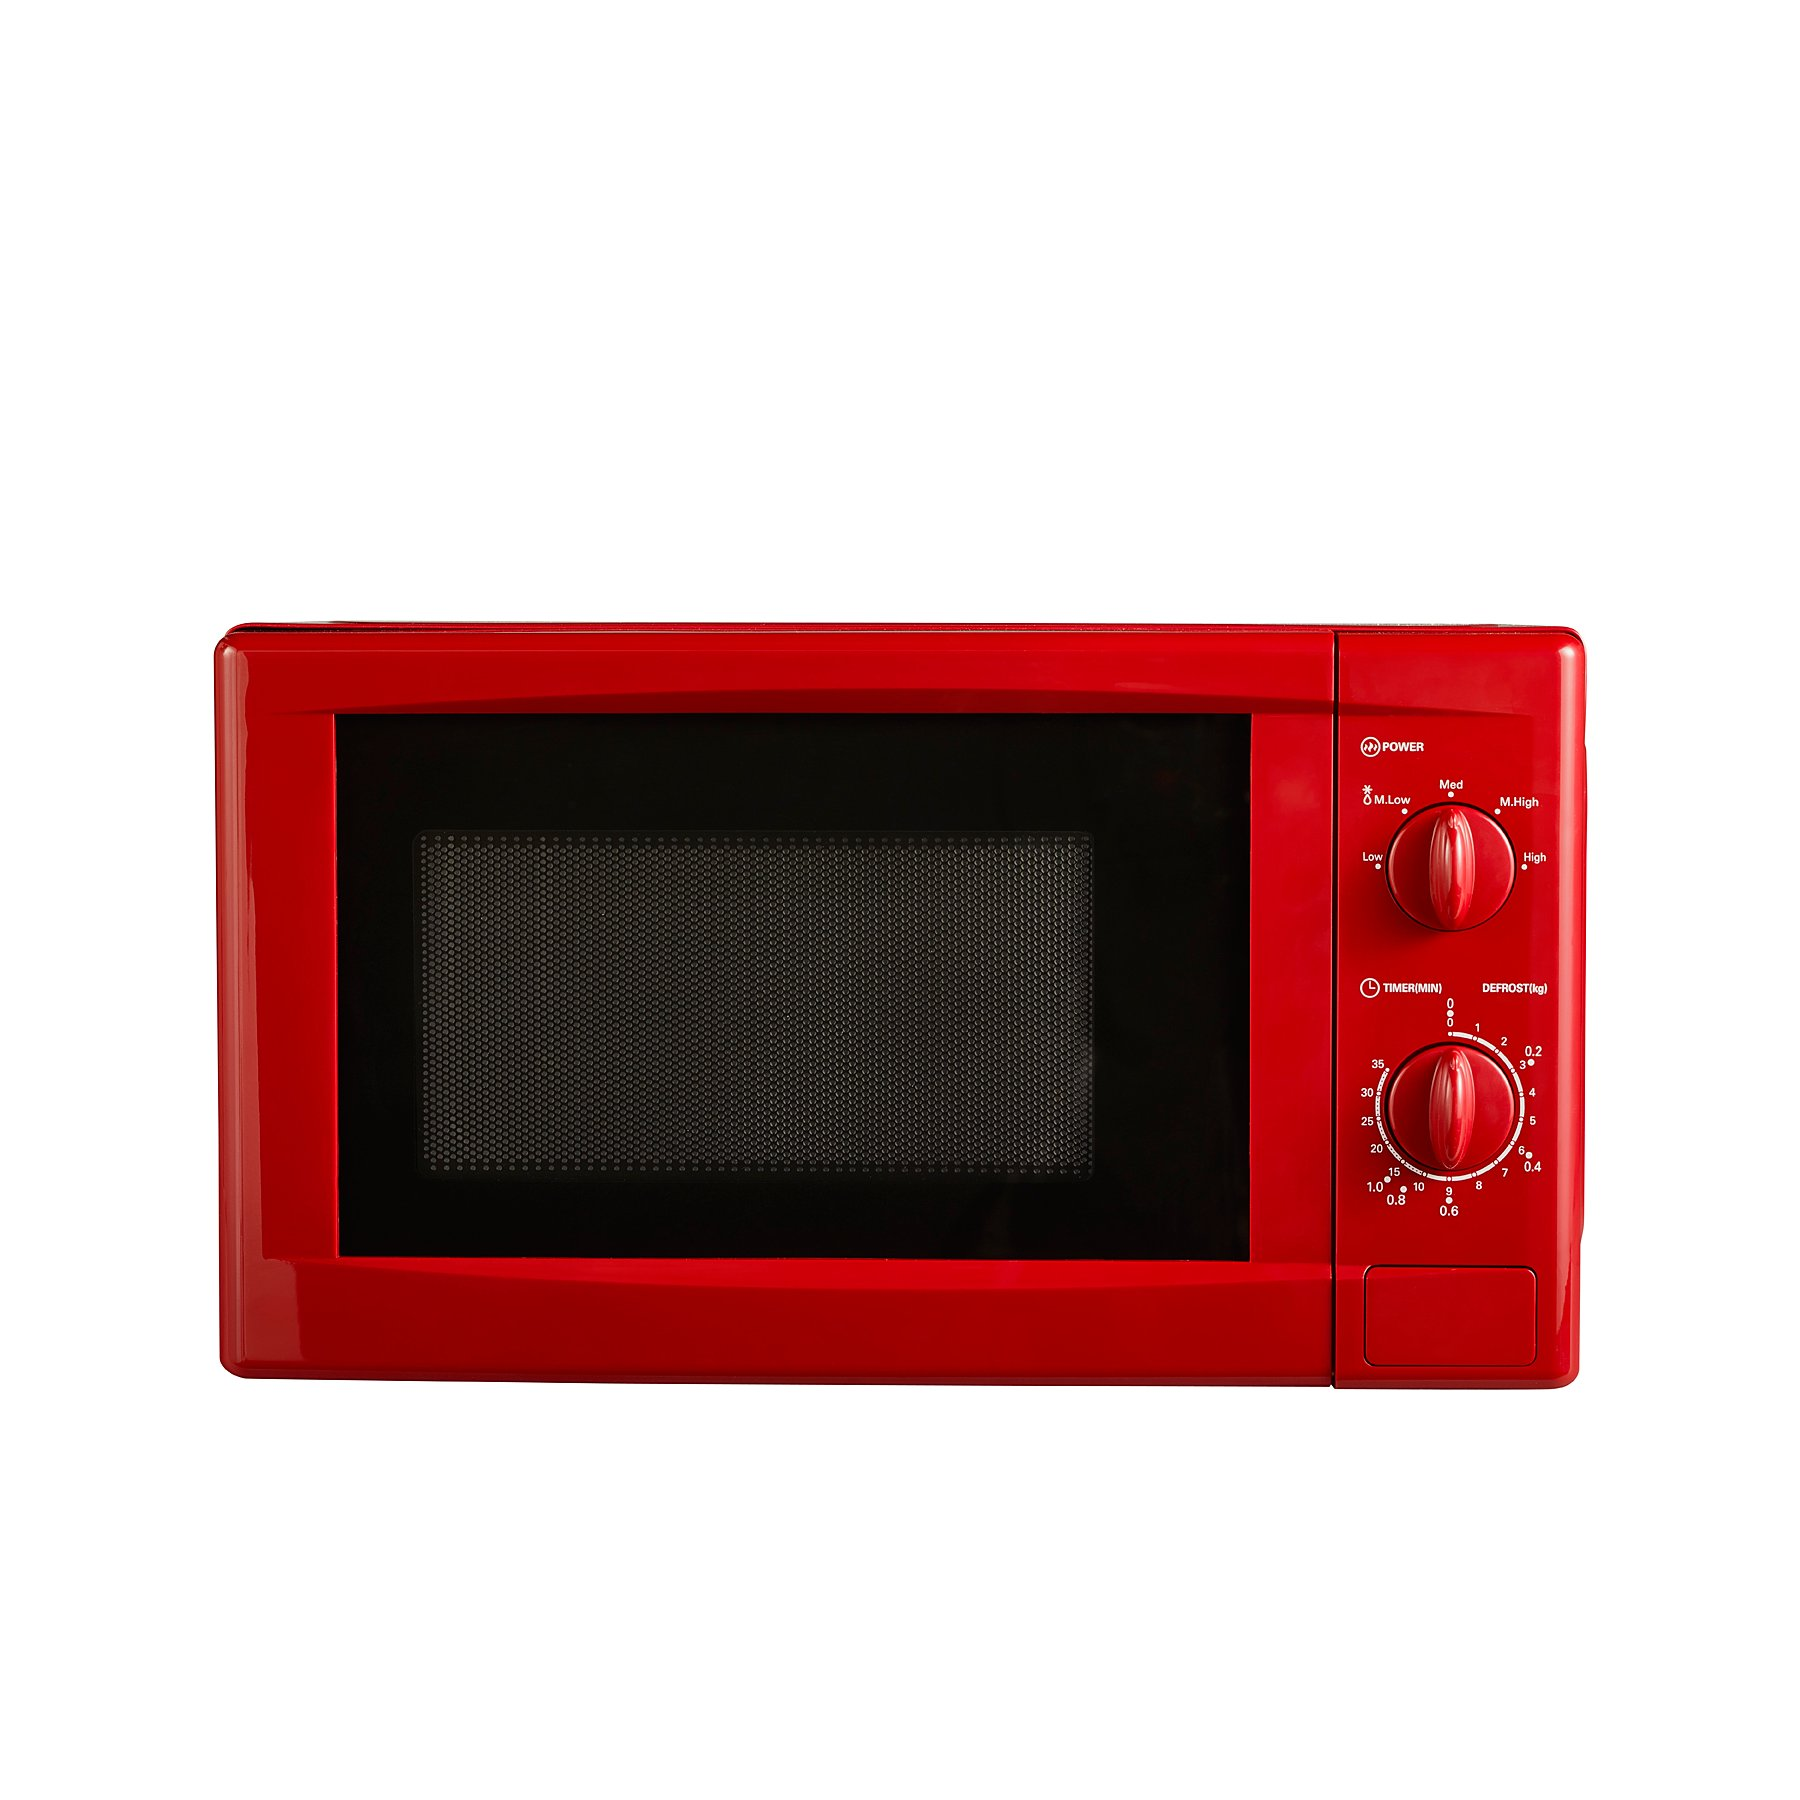 Manual Microwave Red Reset